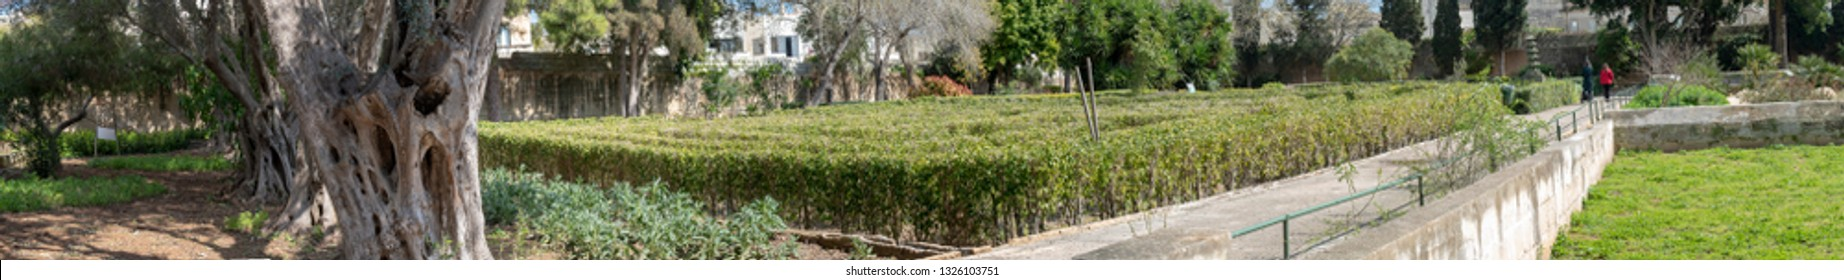 Malta San Anton garden - the maze - japan lane - panoramic view